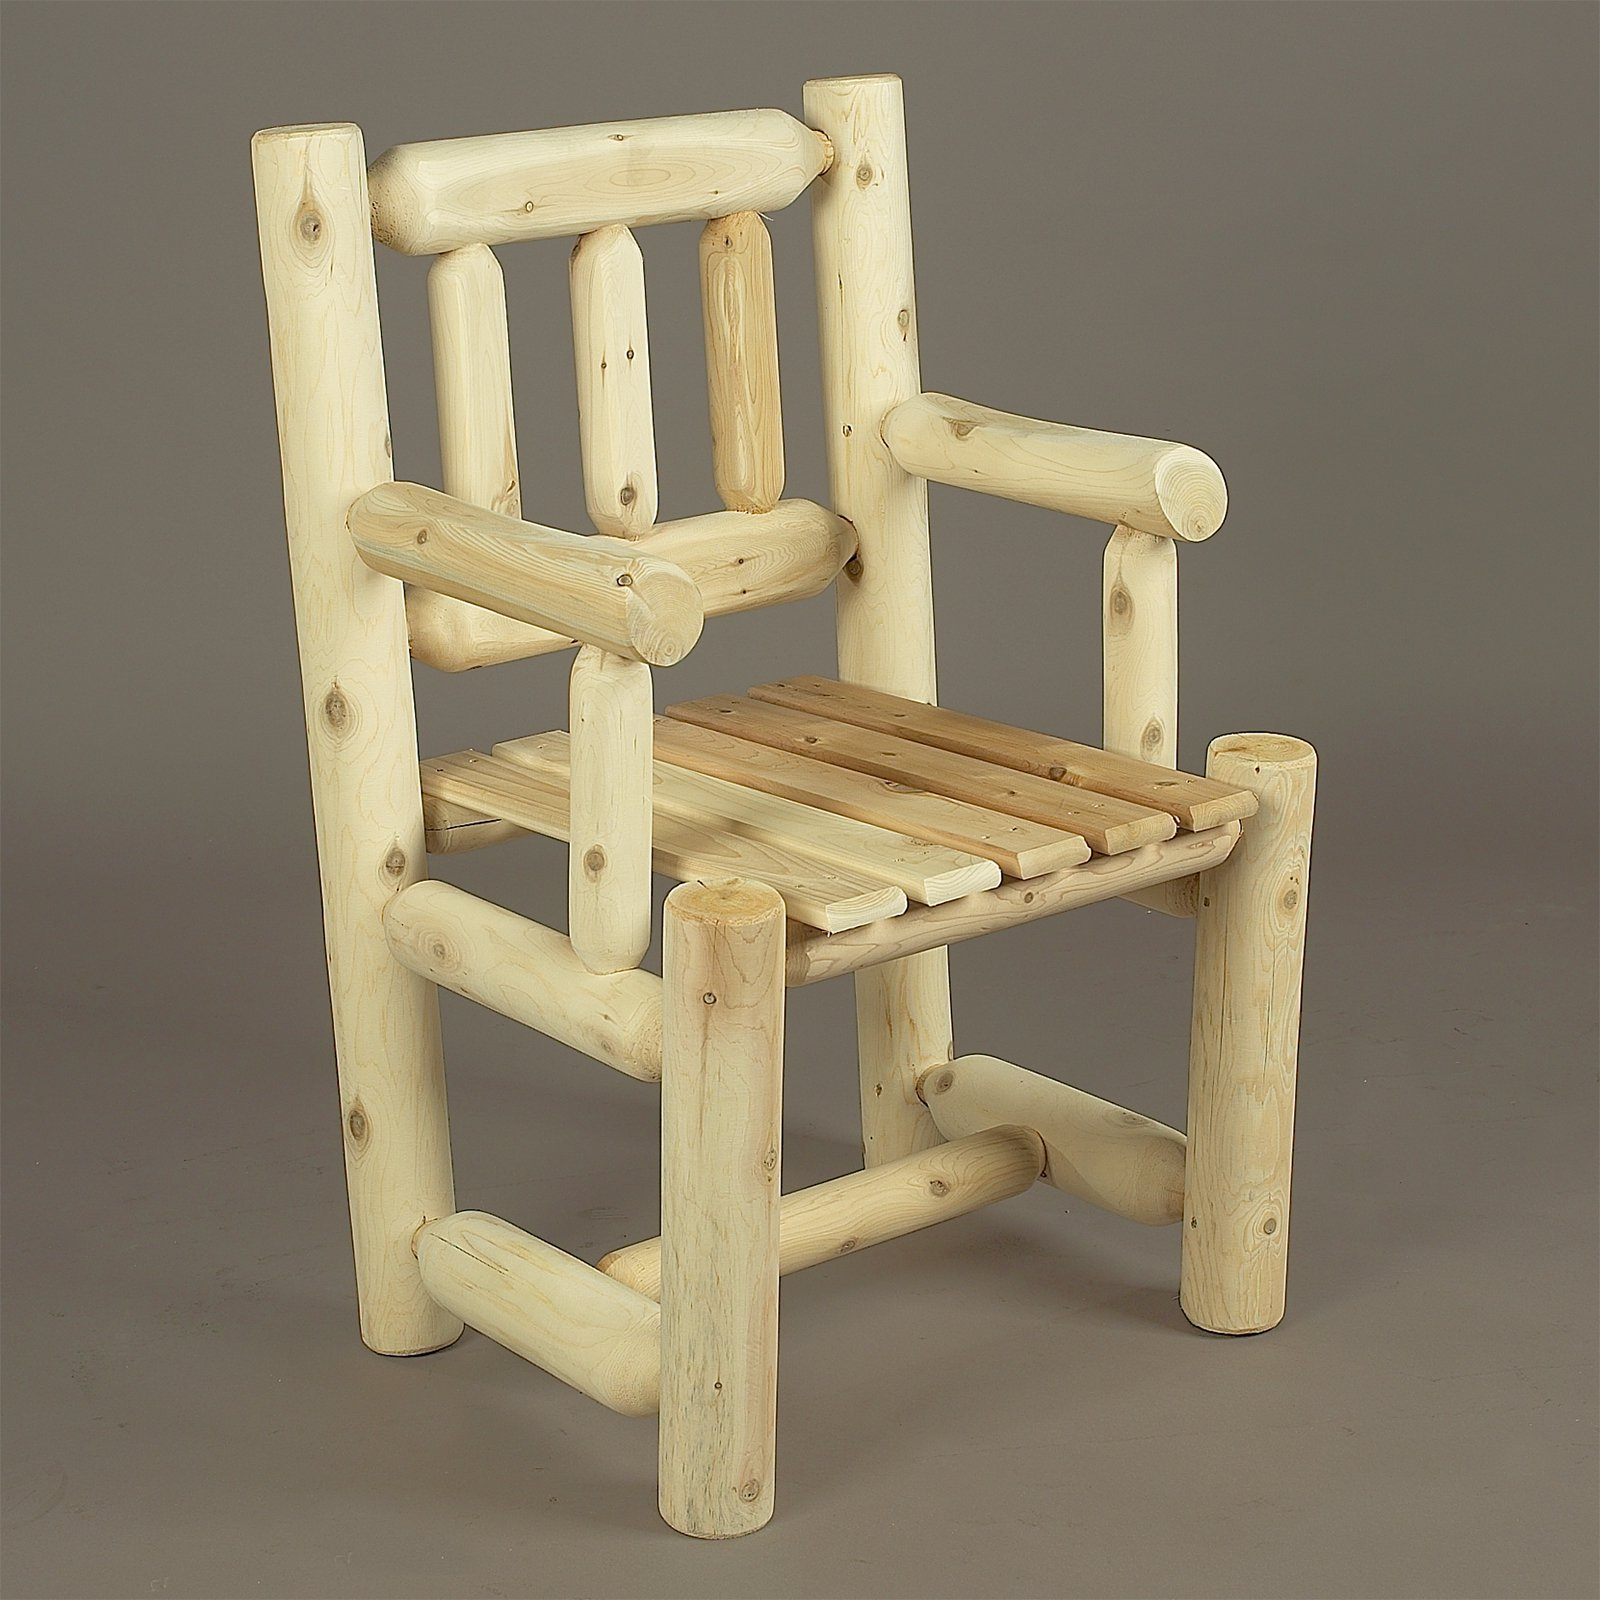 Rustic Natural Cedar Furniture Old Country Captains Chair